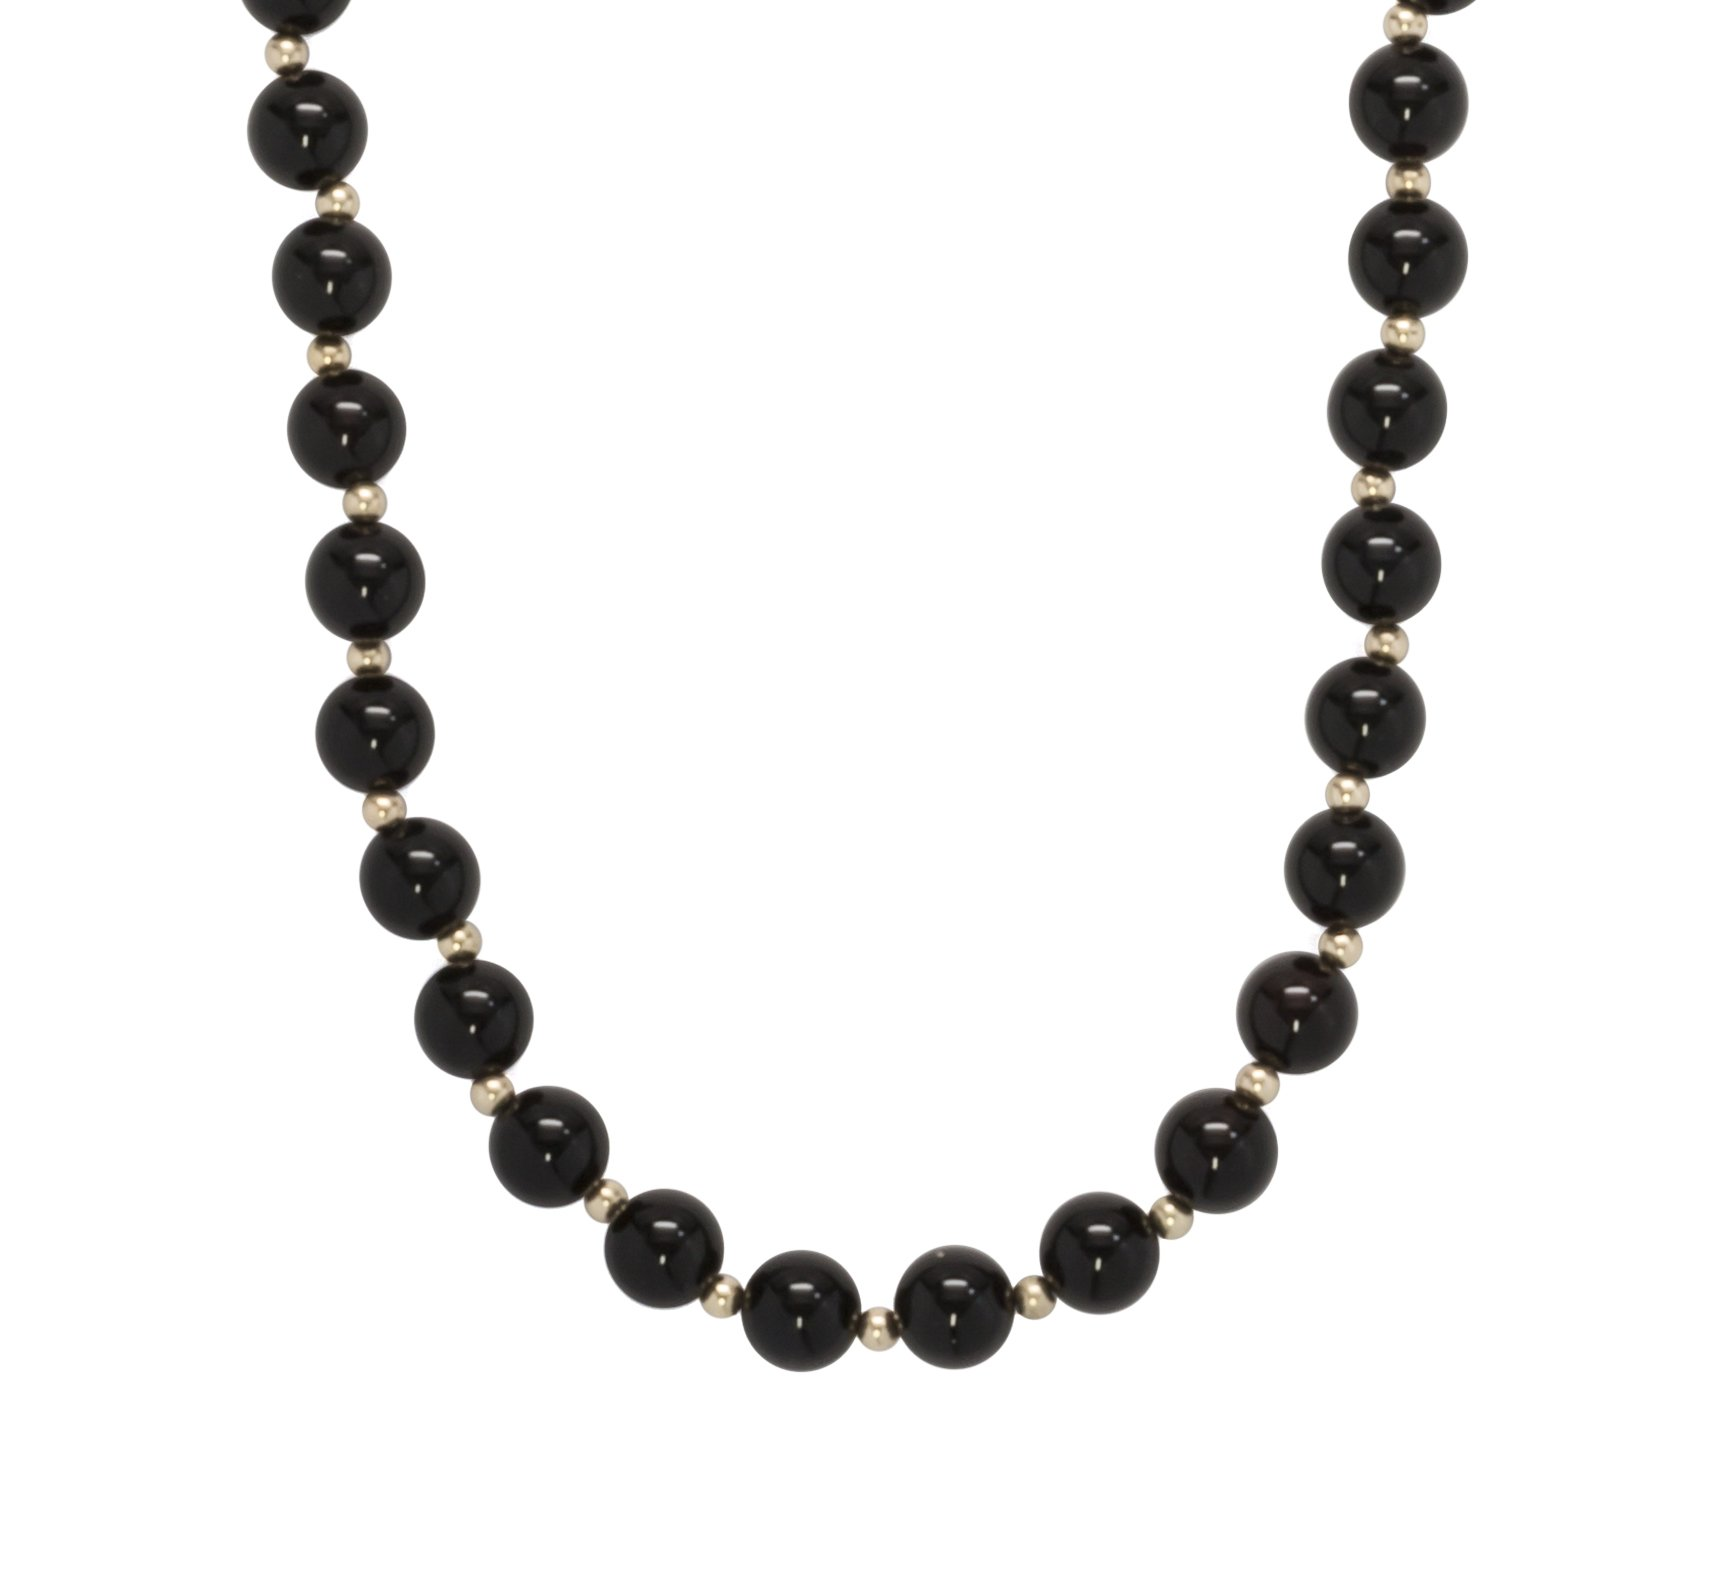 ISAAC WESTMAN 8mm Polished Black Onyx Beads & 14K Yellow Gold Necklace | 14K Gold Ball Clasp